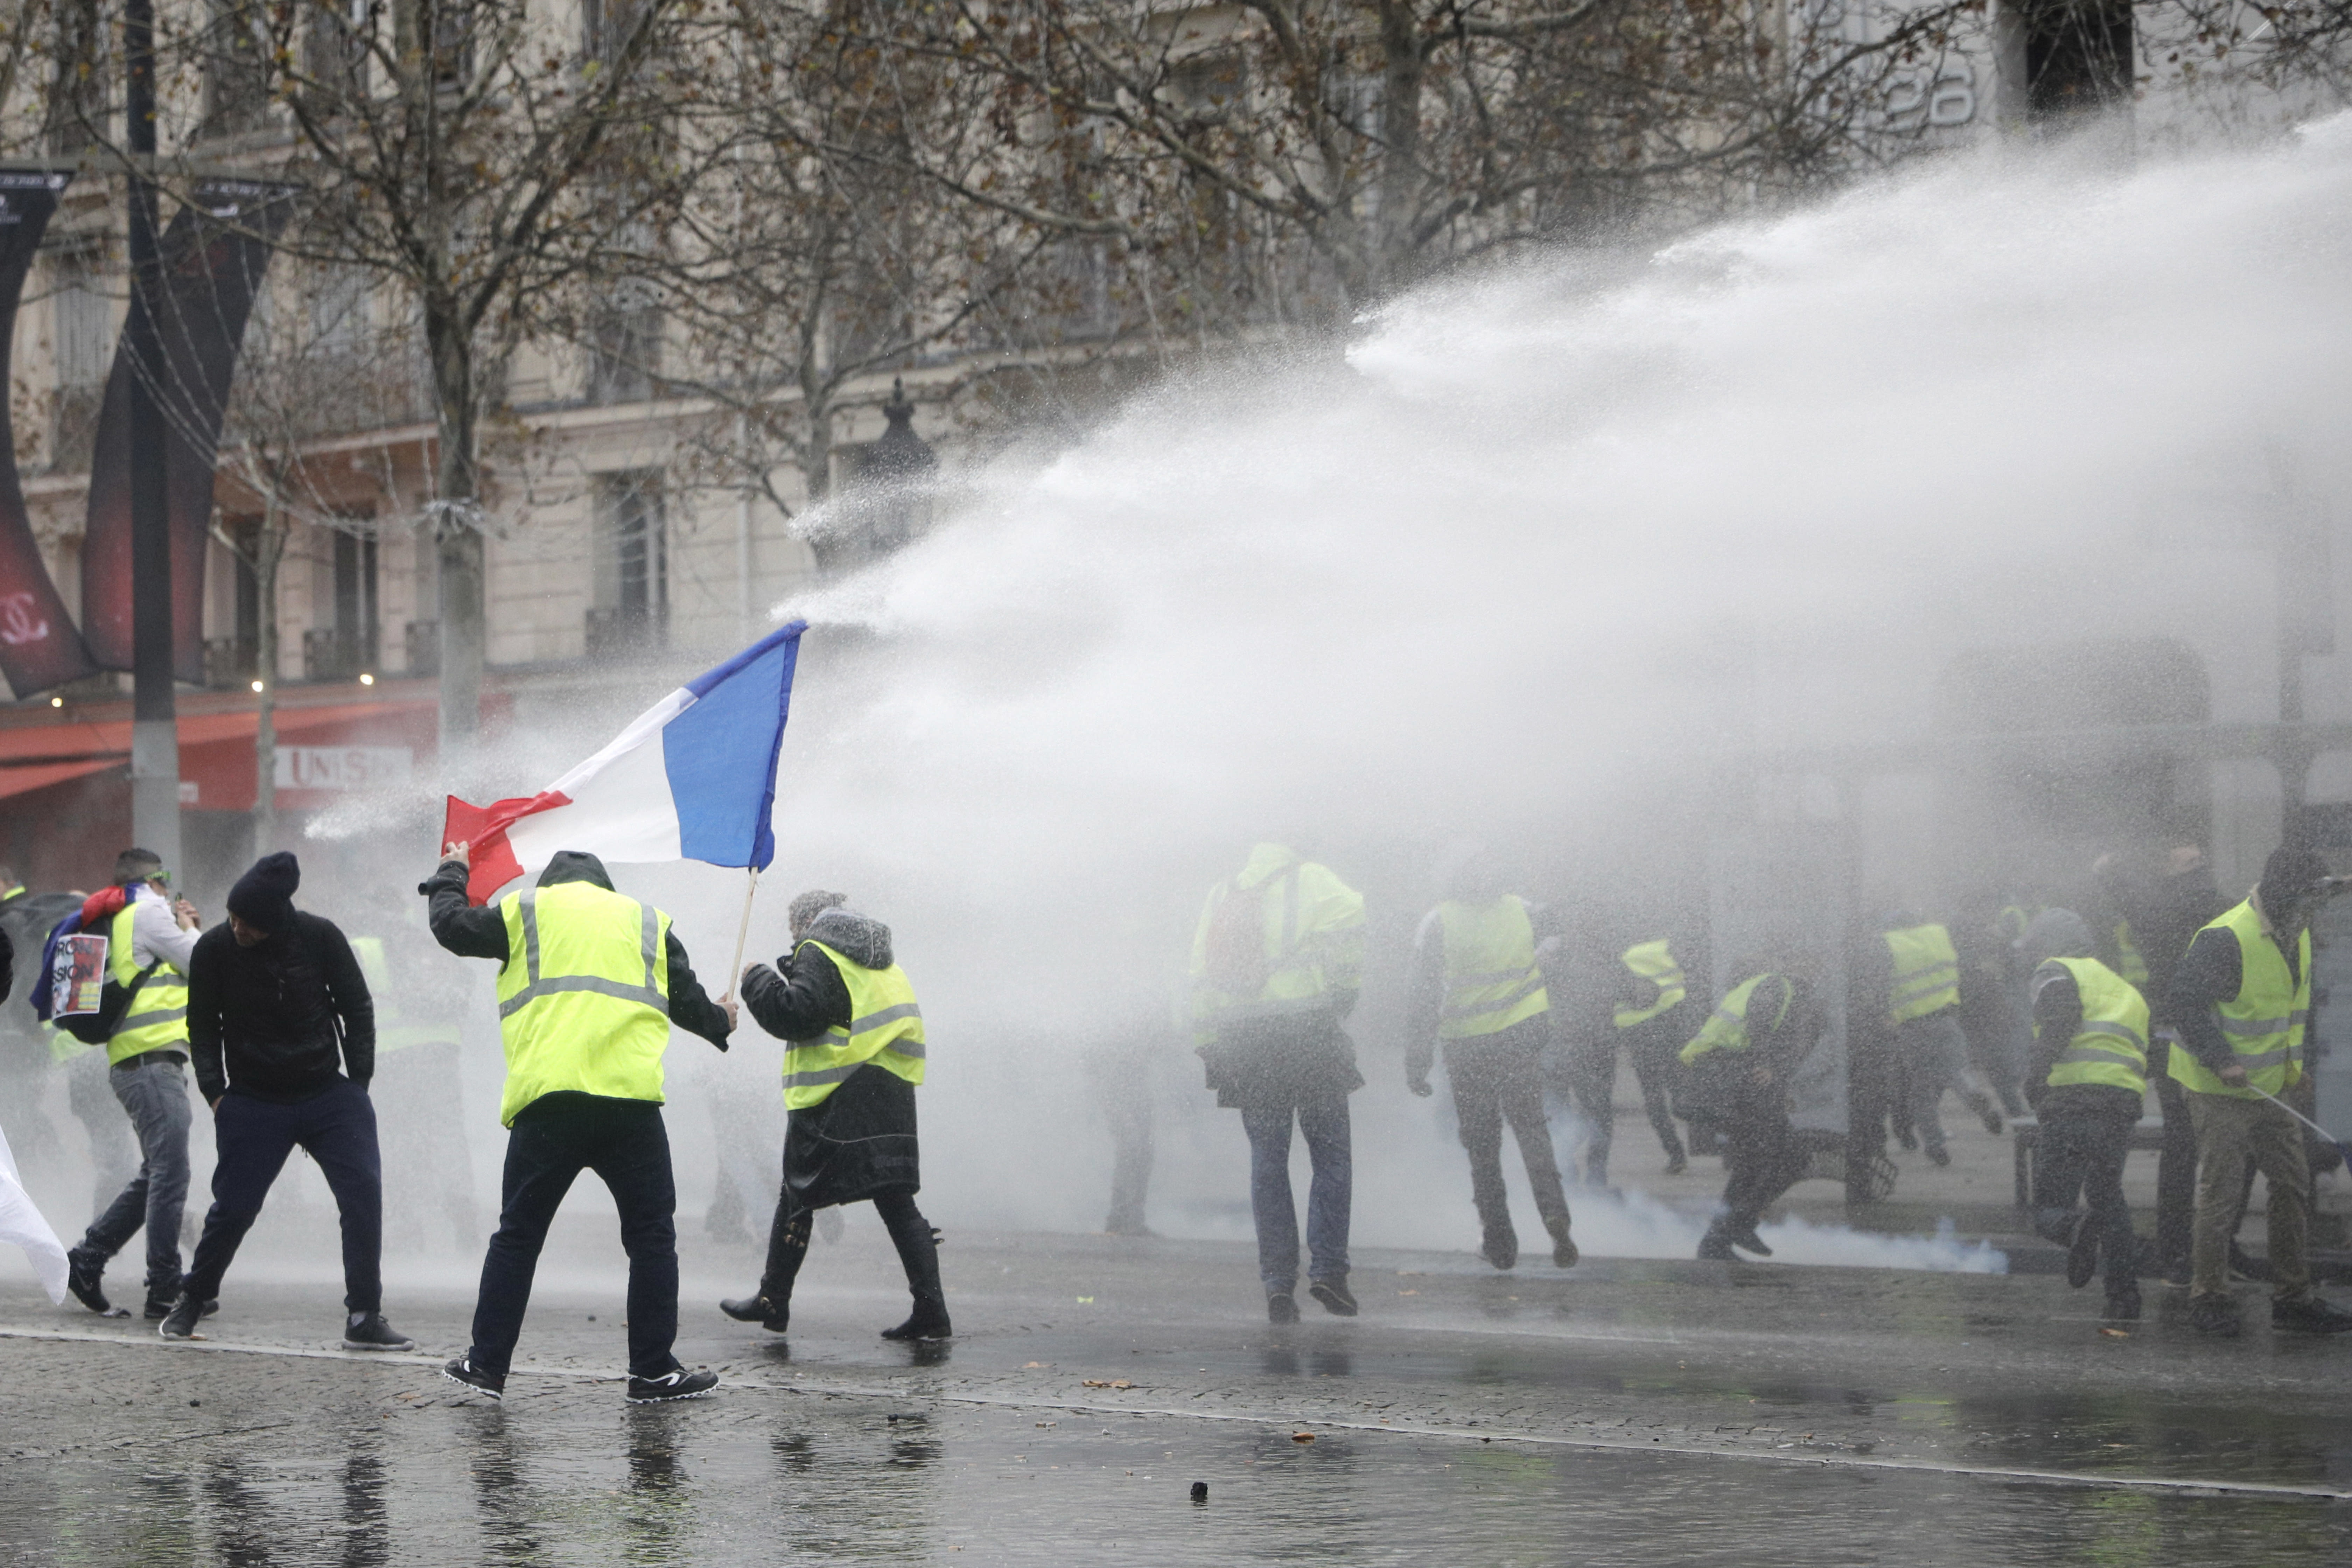 <p> Police operates a water canon during clashes with demonstrators, called the yellow jackets, on the famed Champs-Elysees avenue in Paris, as they protests against the rising of the fuel taxes, France, Saturday, Nov. 24, 2018. France is deploying thousands of police to try to contain nationwide protests and road blockades by drivers angry over rising fuel taxes and Emmanuel Macron's presidency. (AP Photo/Kamil Zihnioglu) </p>